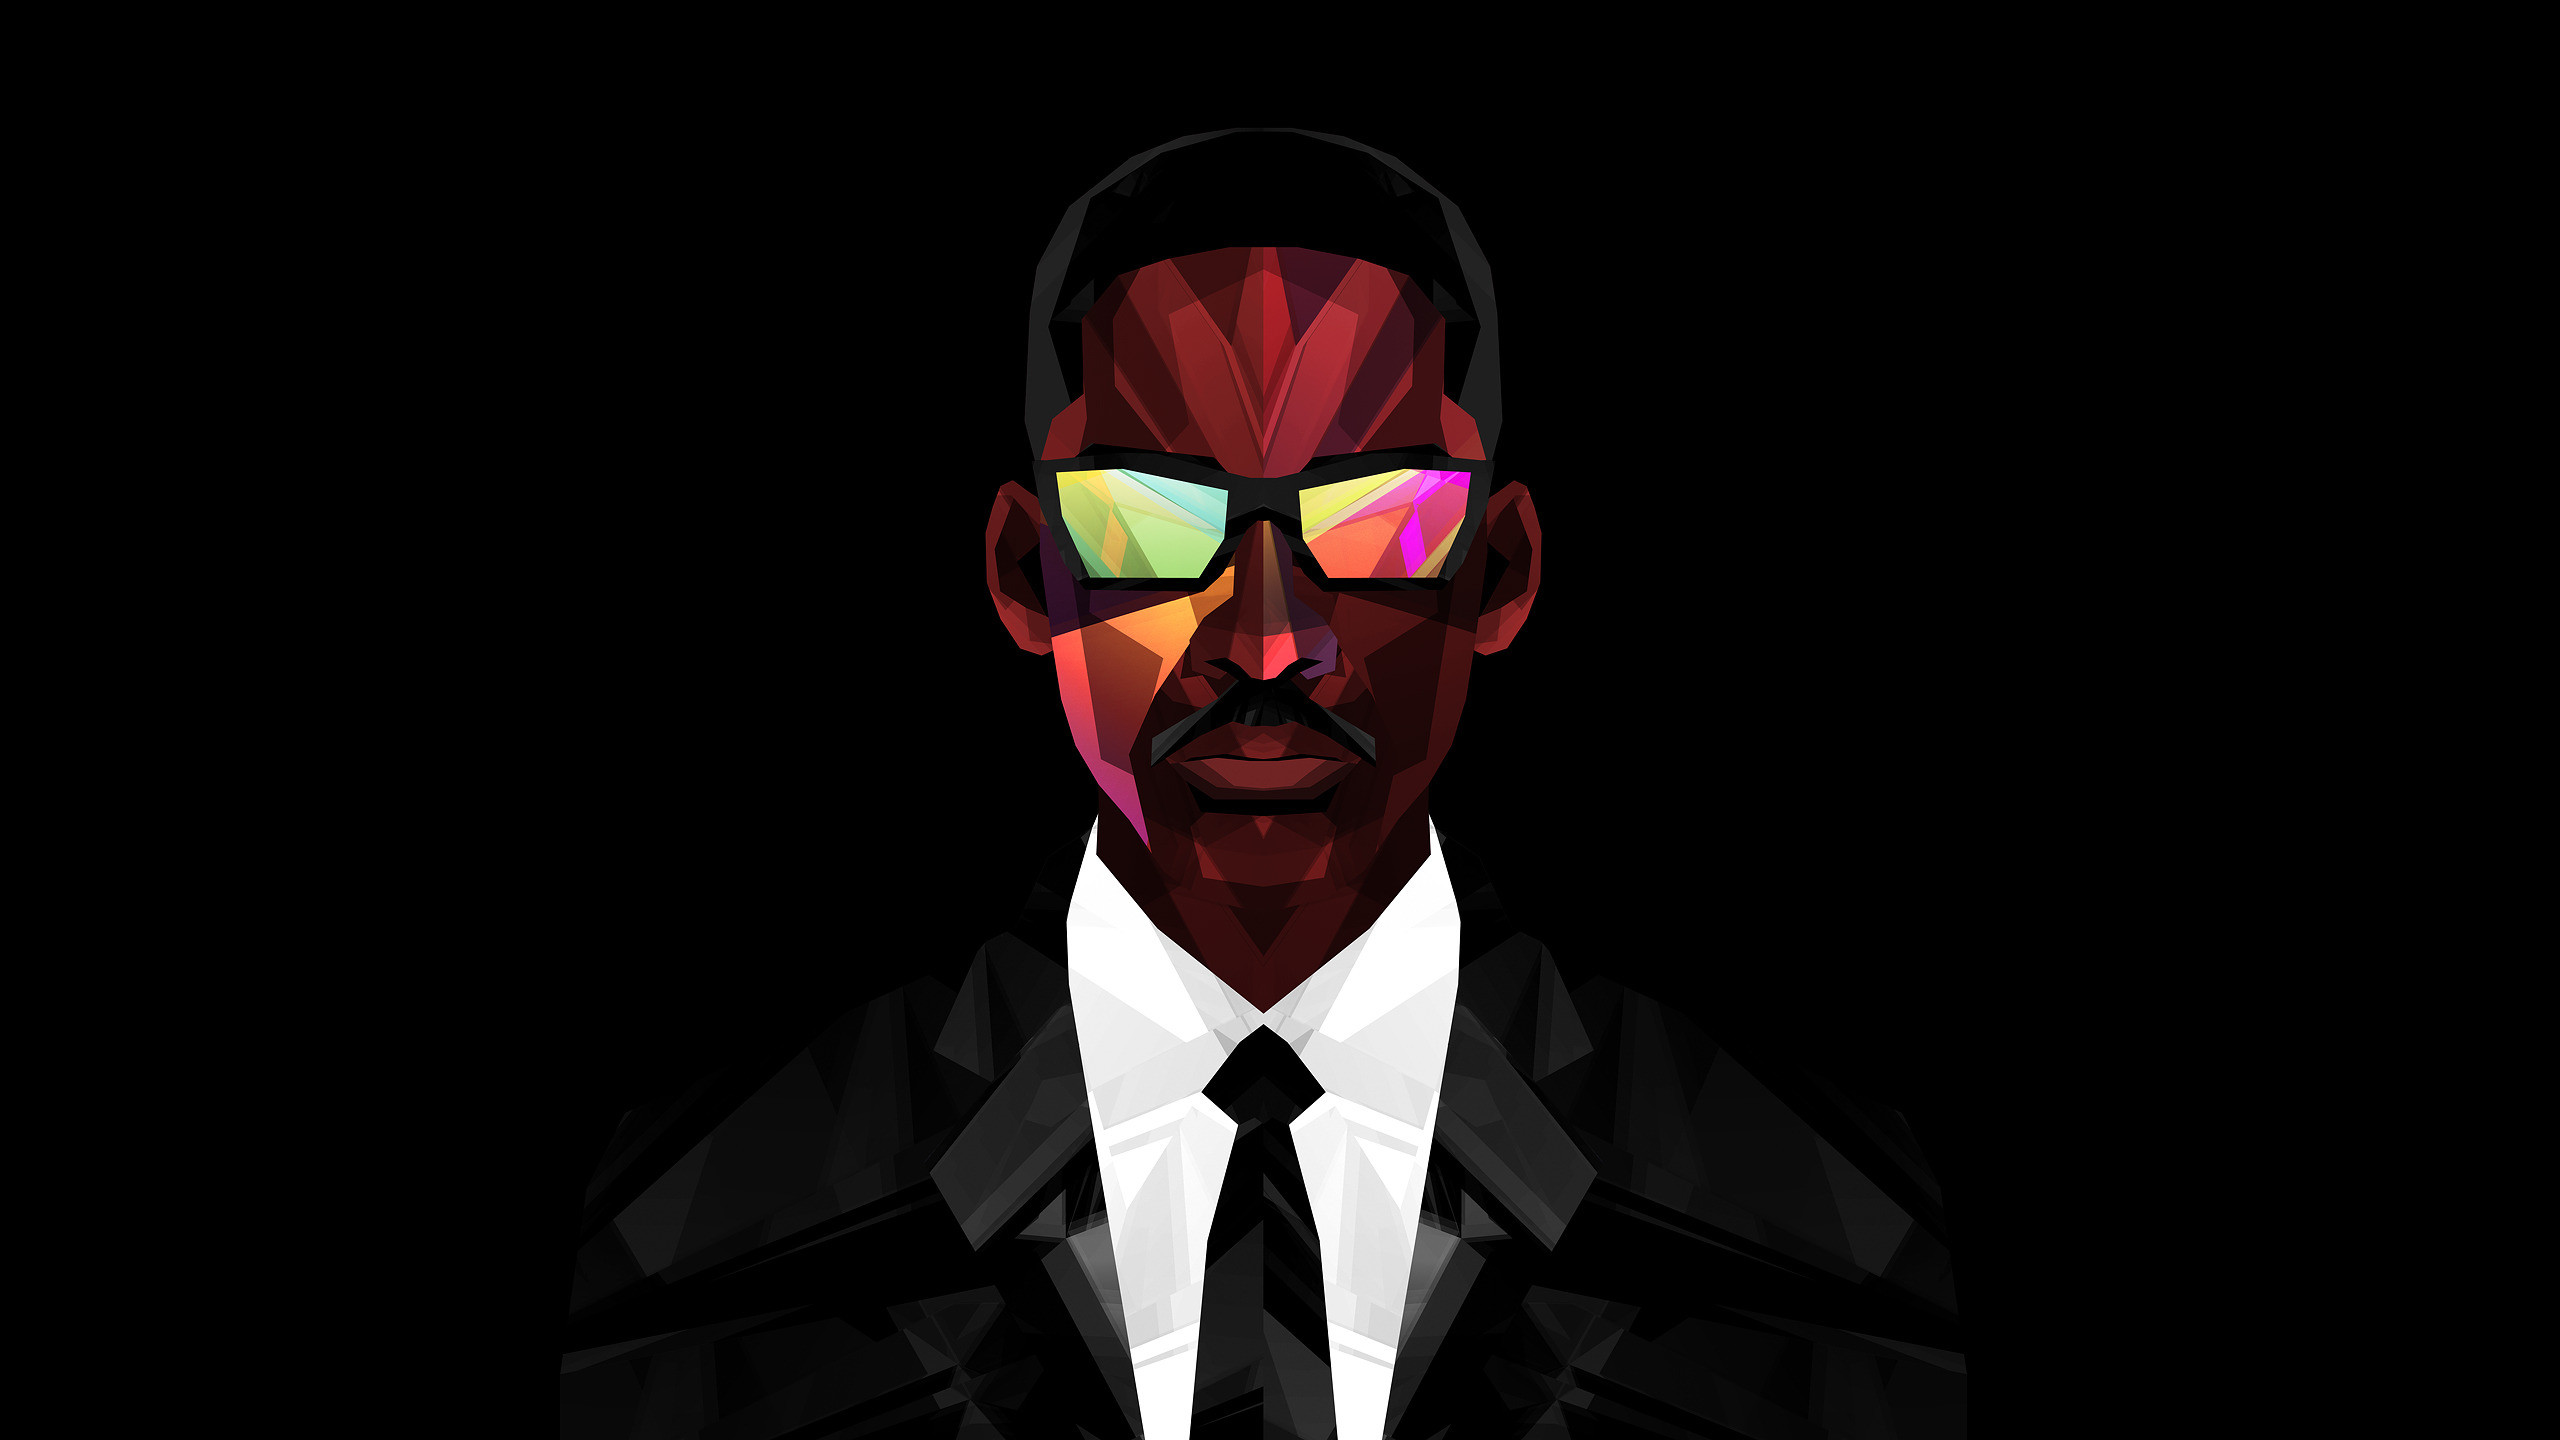 iPhone Low Poly Men in Black Will Smith – Wallpaper | iPhone Wallpapers  Black | Pinterest | Low poly and Wallpaper